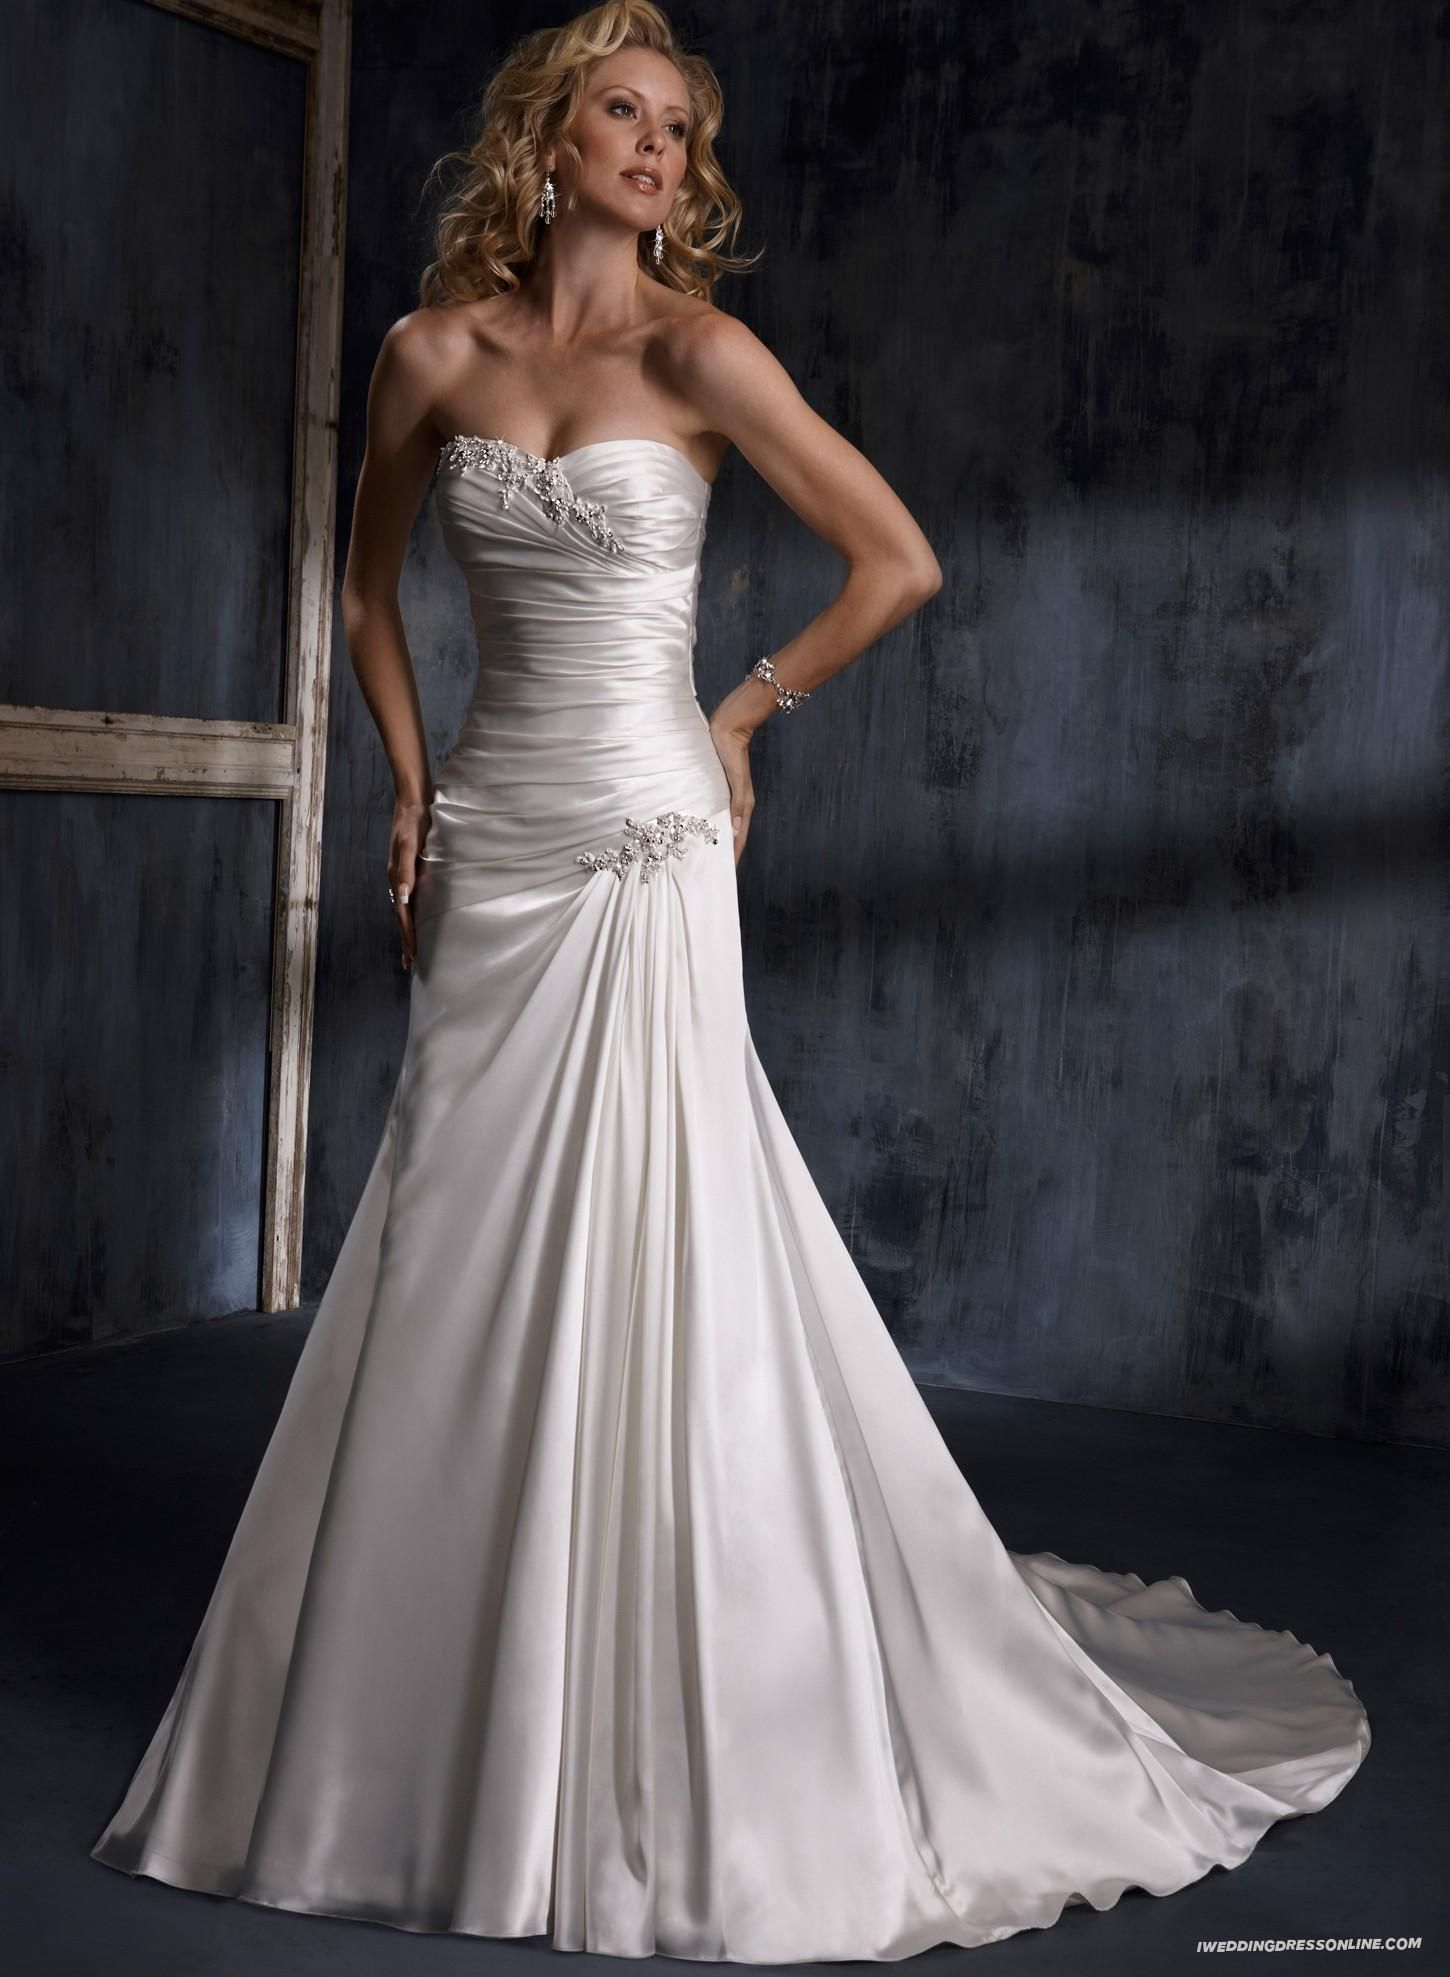 Suitable Demir Stretch Satin Crystals Adorn The Strapless Sweetheart Slim A Line Wedding Dress In